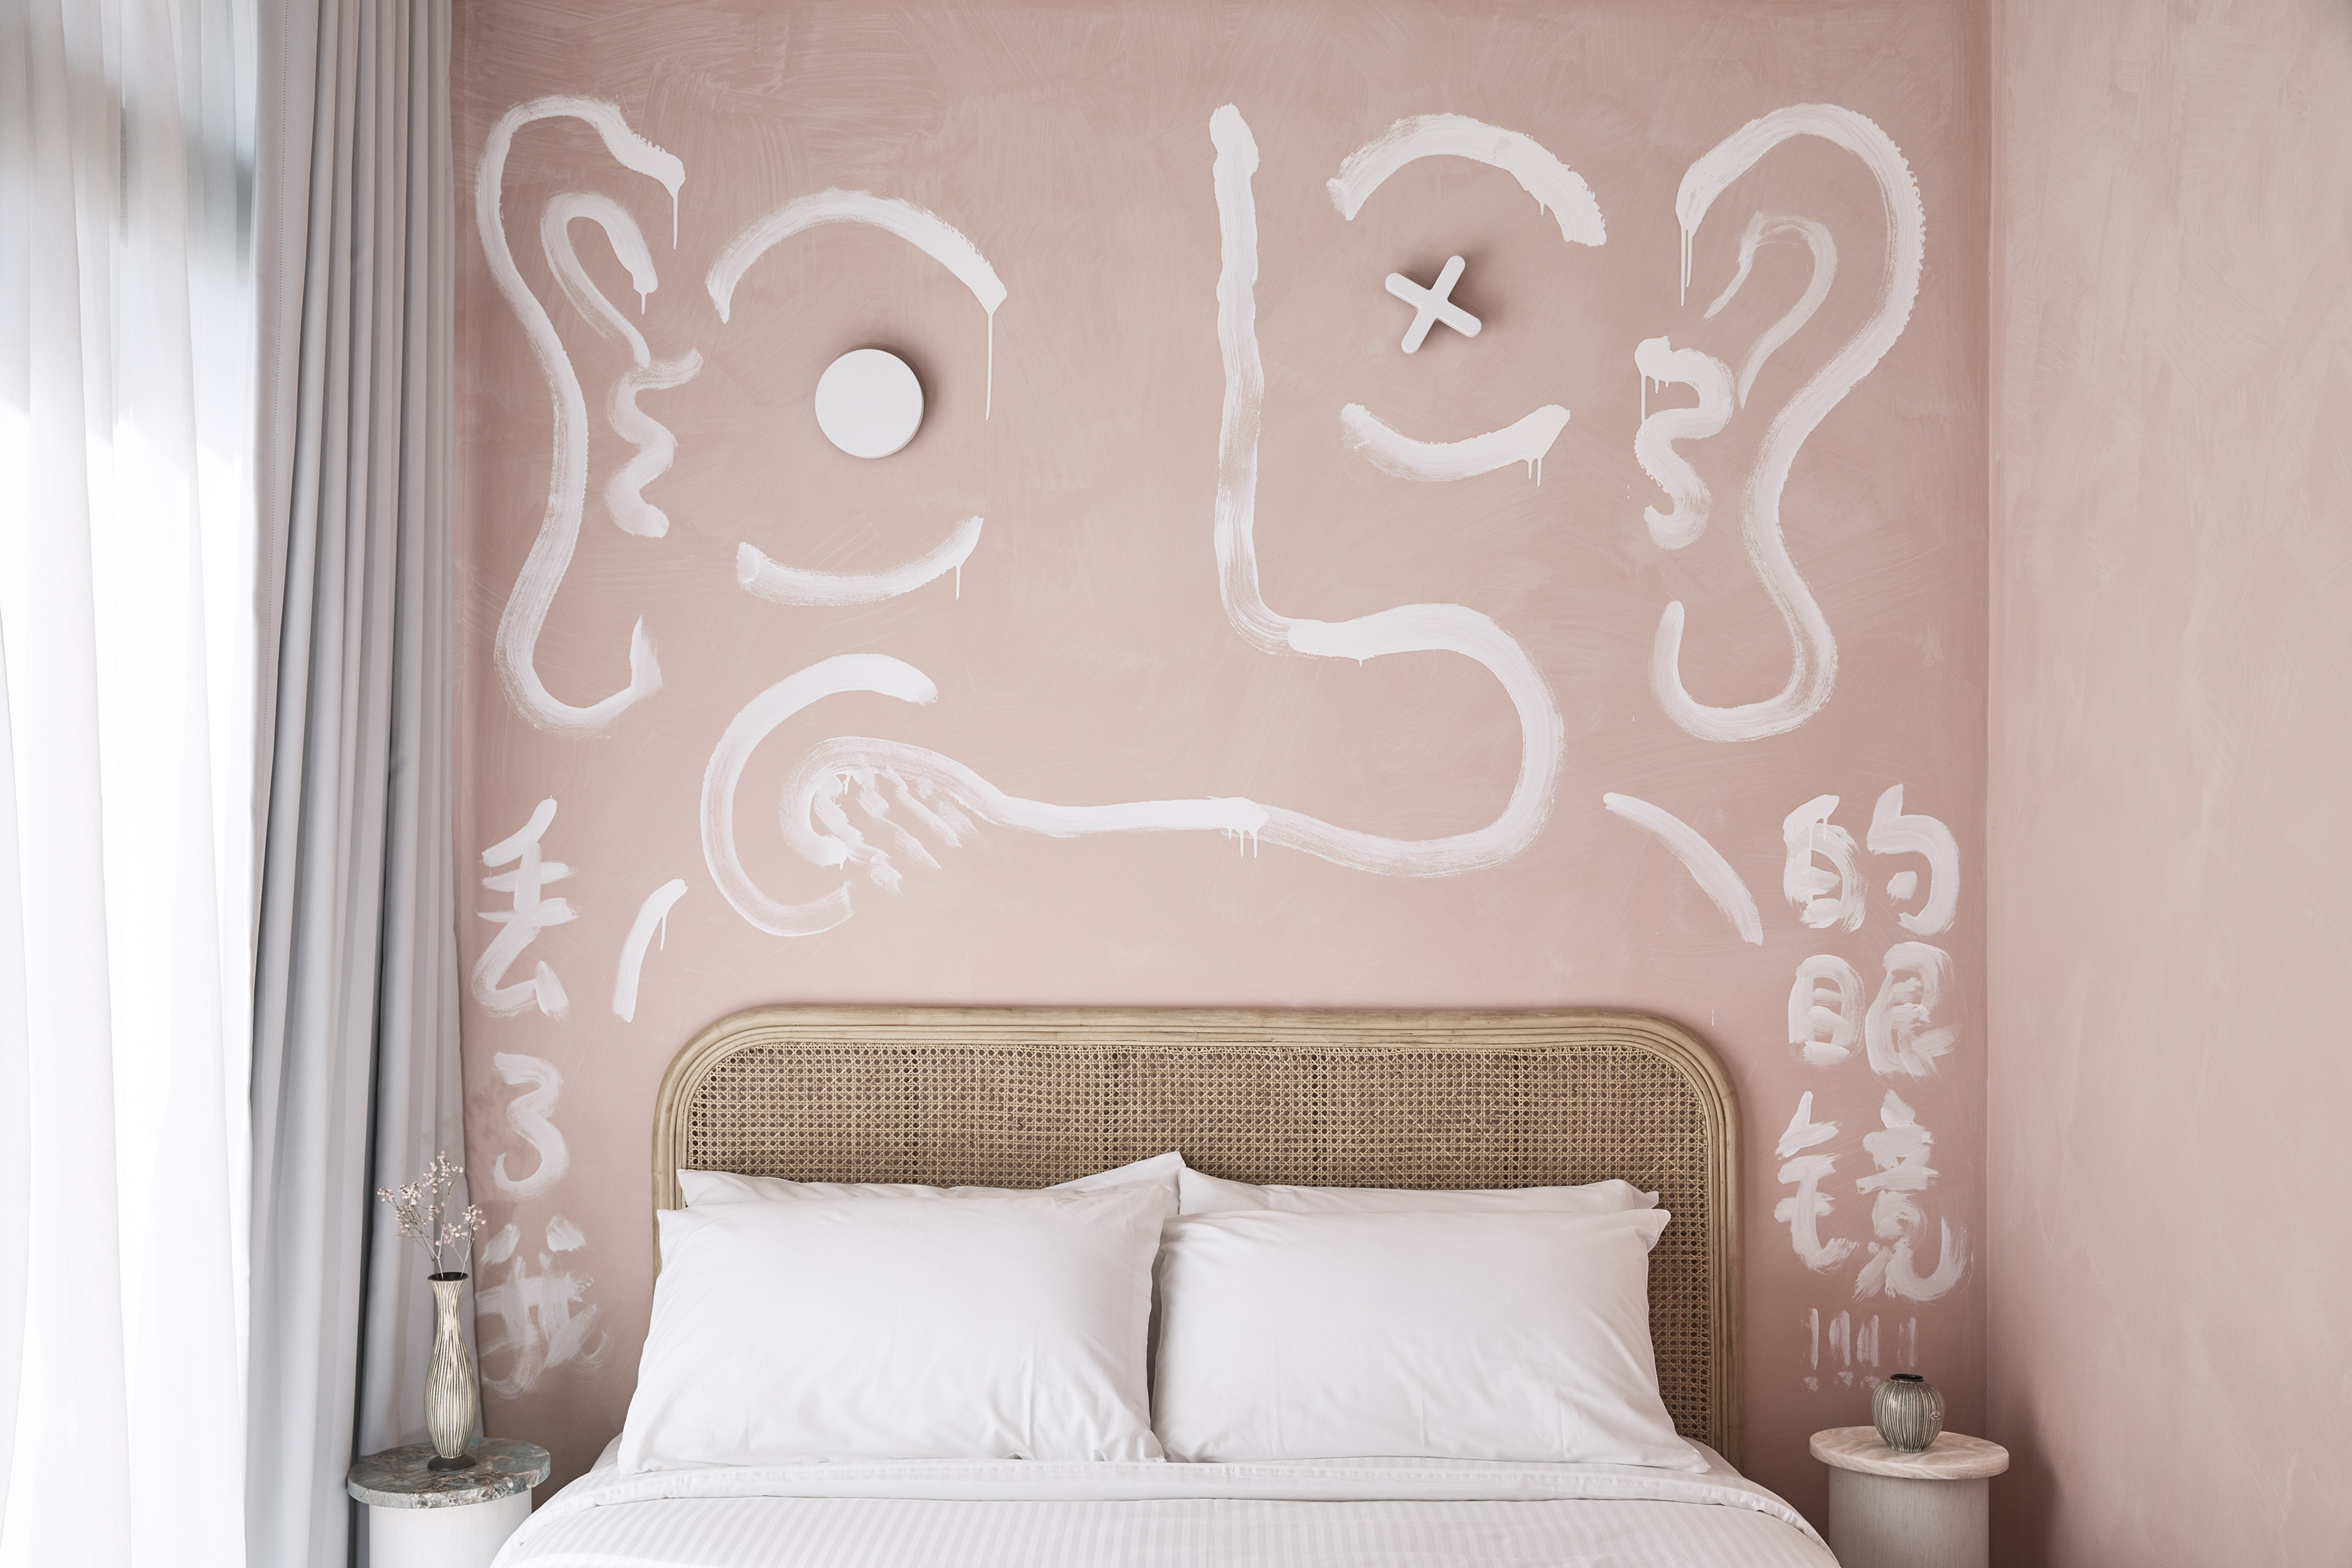 PATTERN_Hotel Collectionist_Rm 306.1